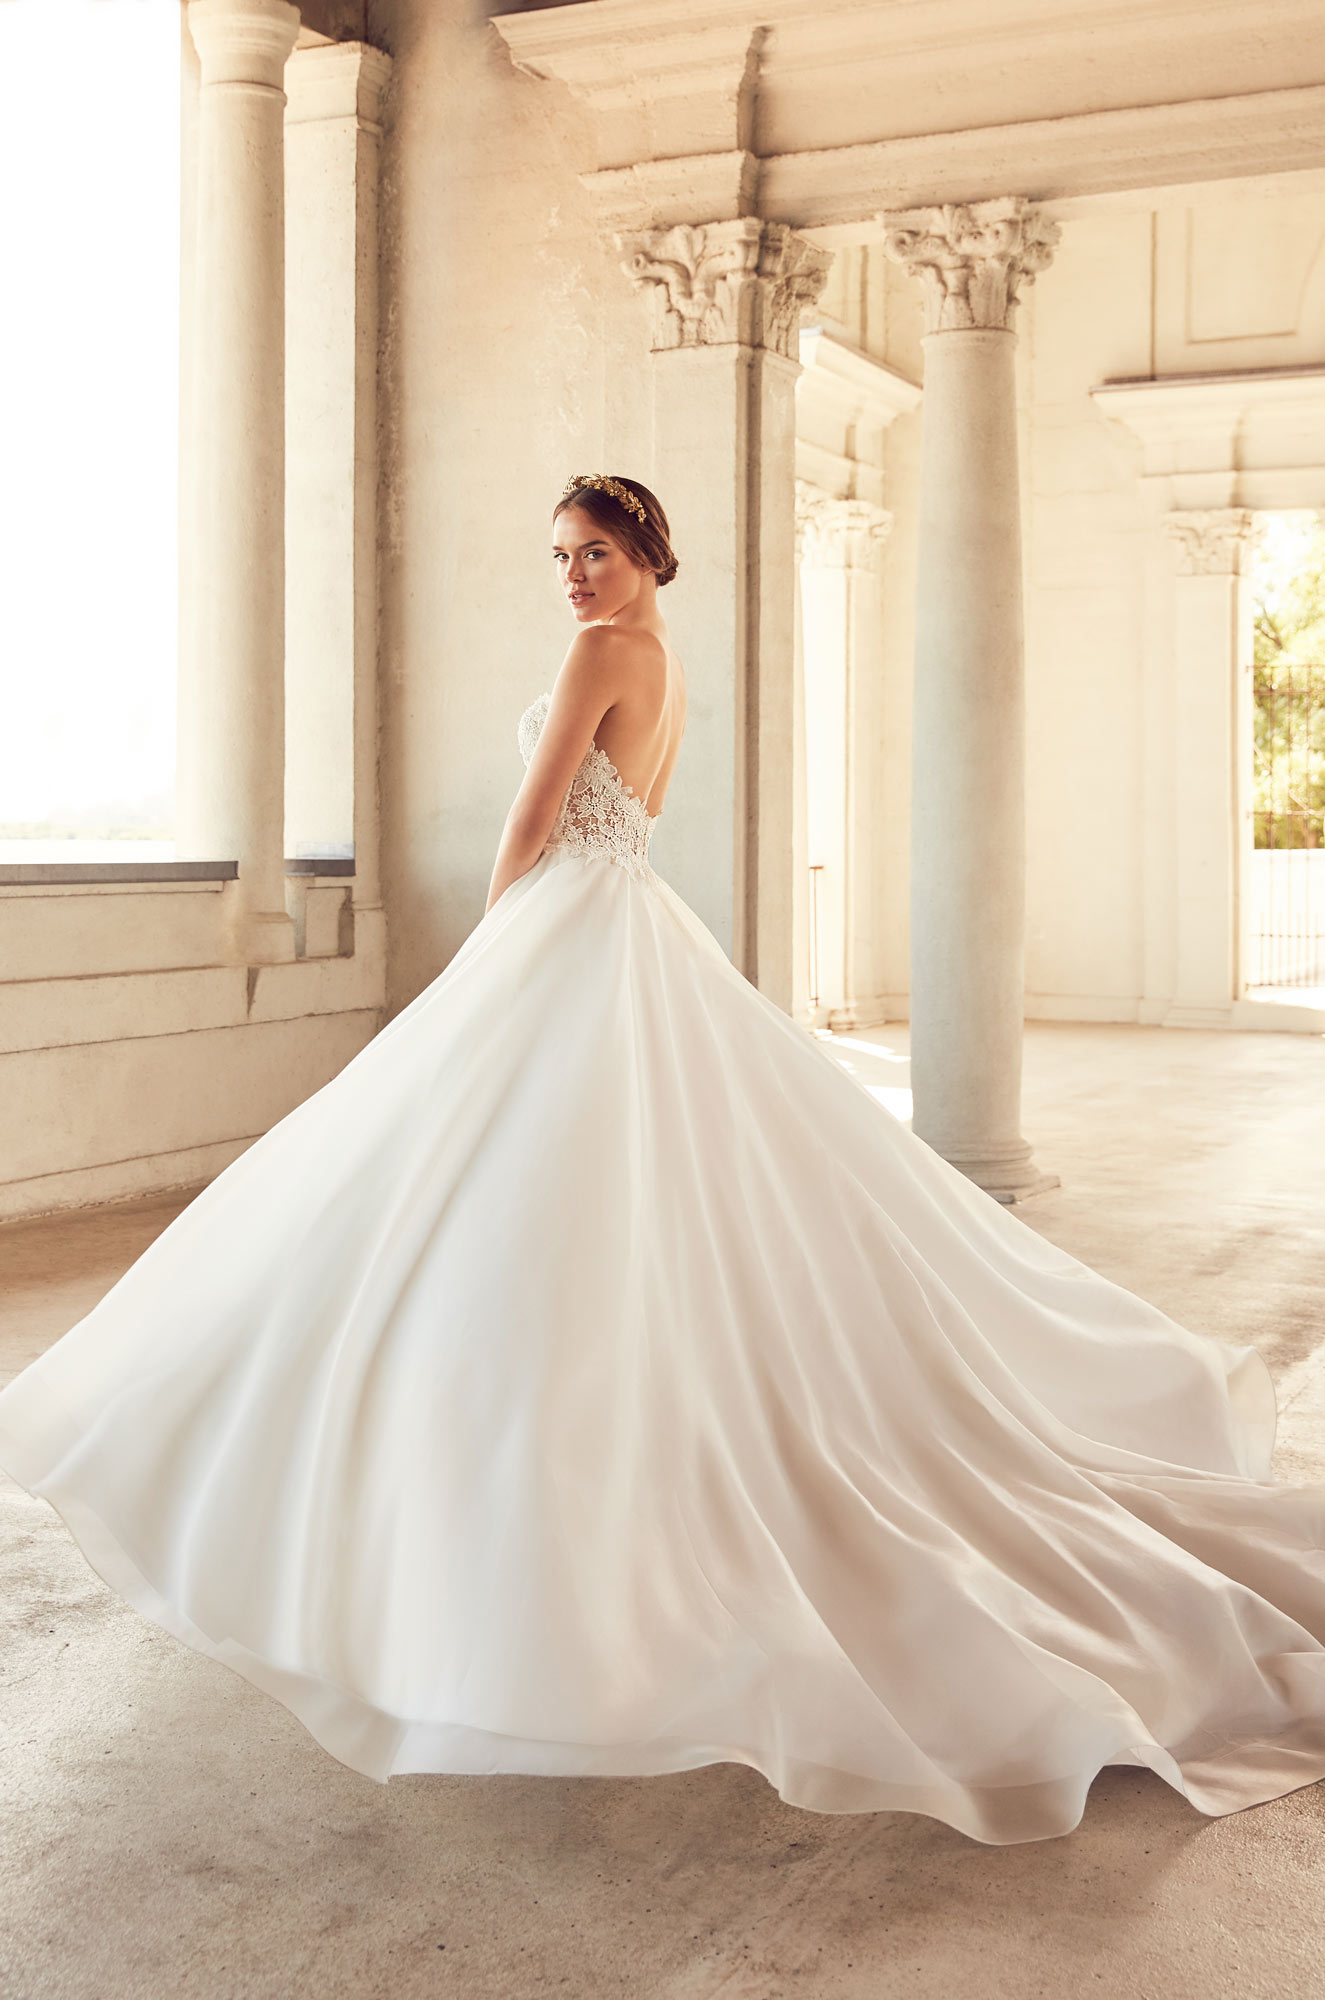 Full Flowing Skirt Wedding Dress – Style #4793 | Paloma Blanca